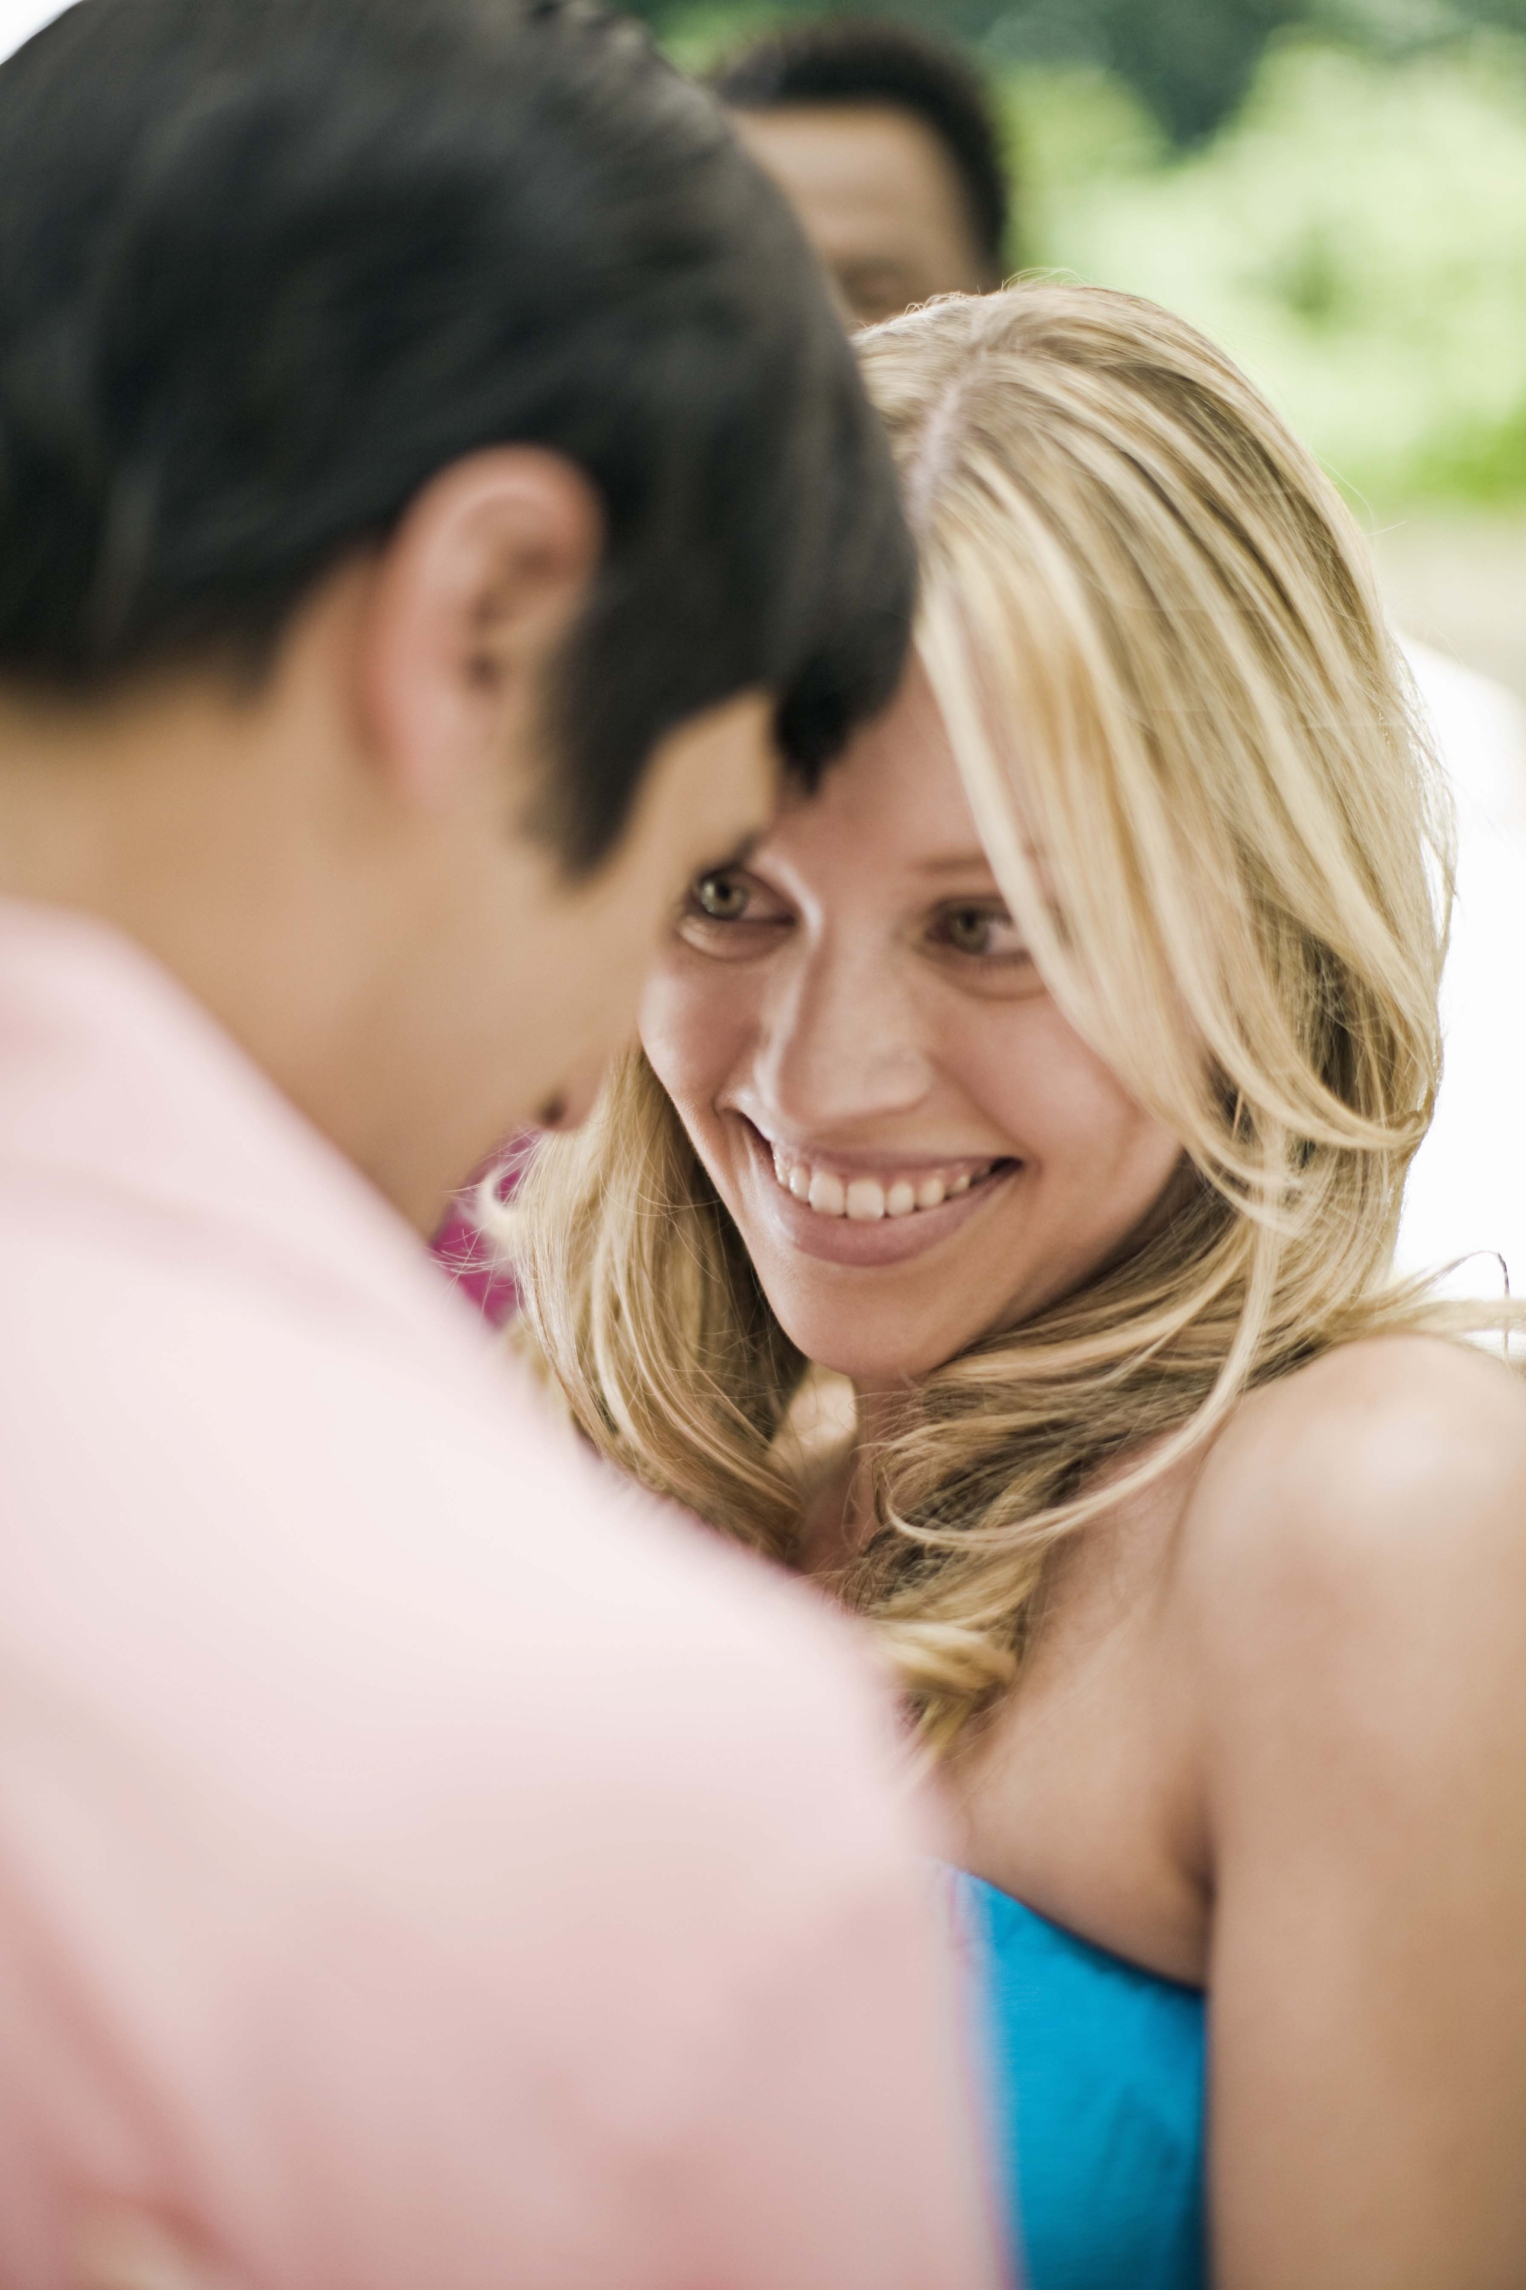 dating service italy